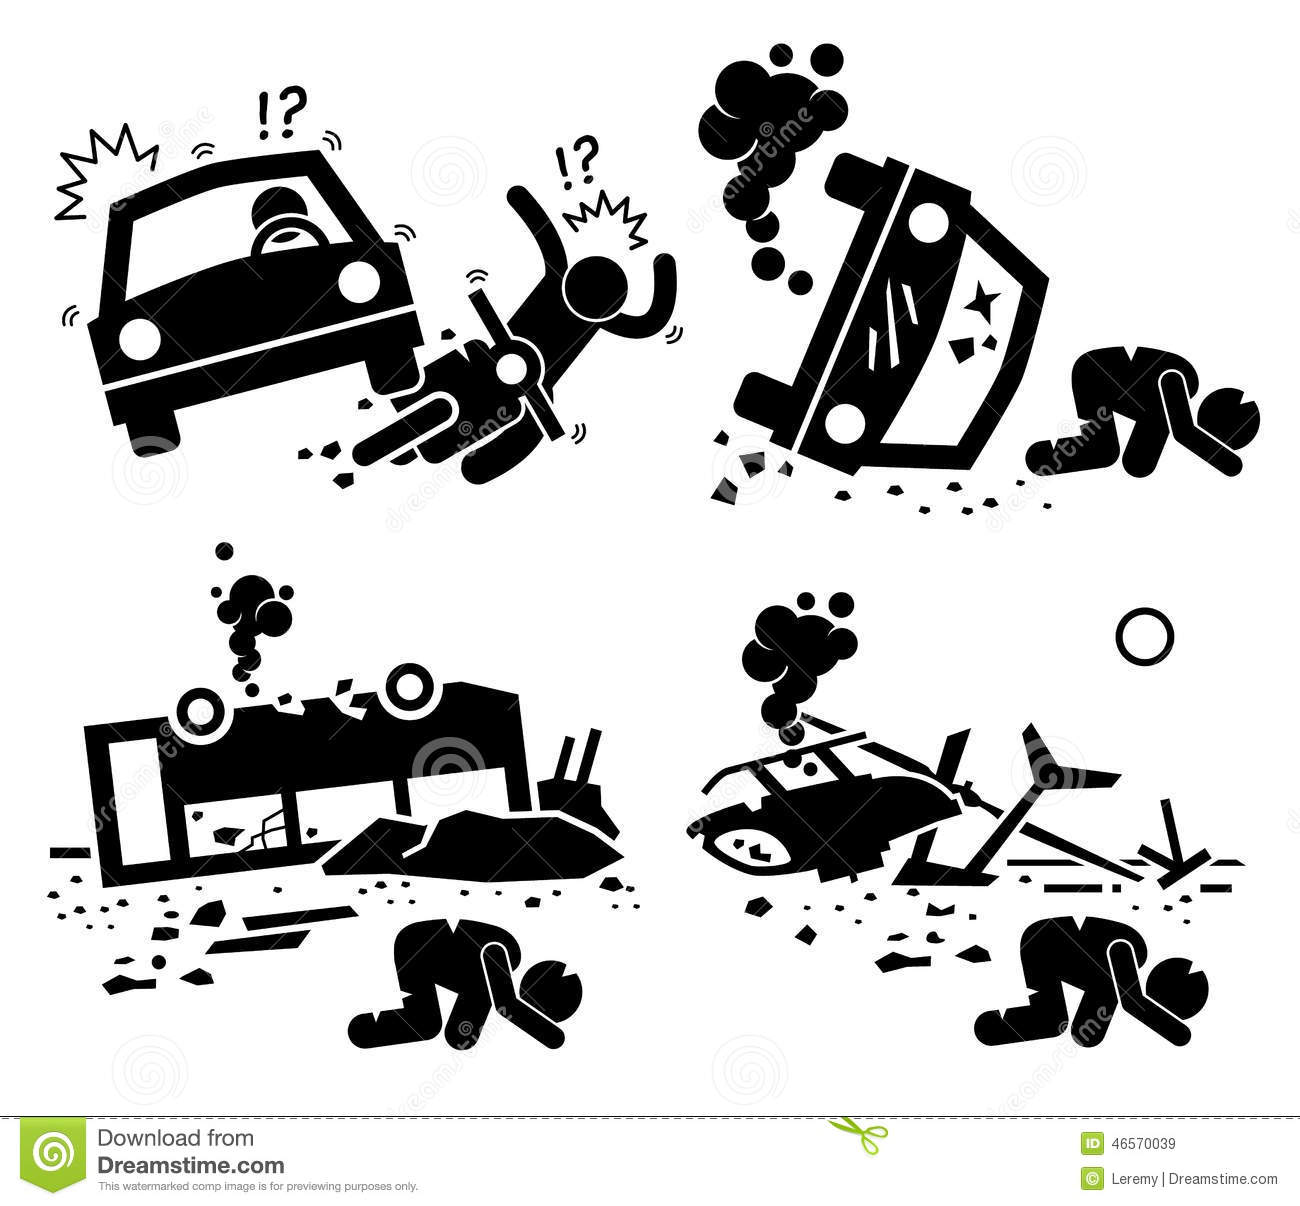 Motorcycle wreck clipart.